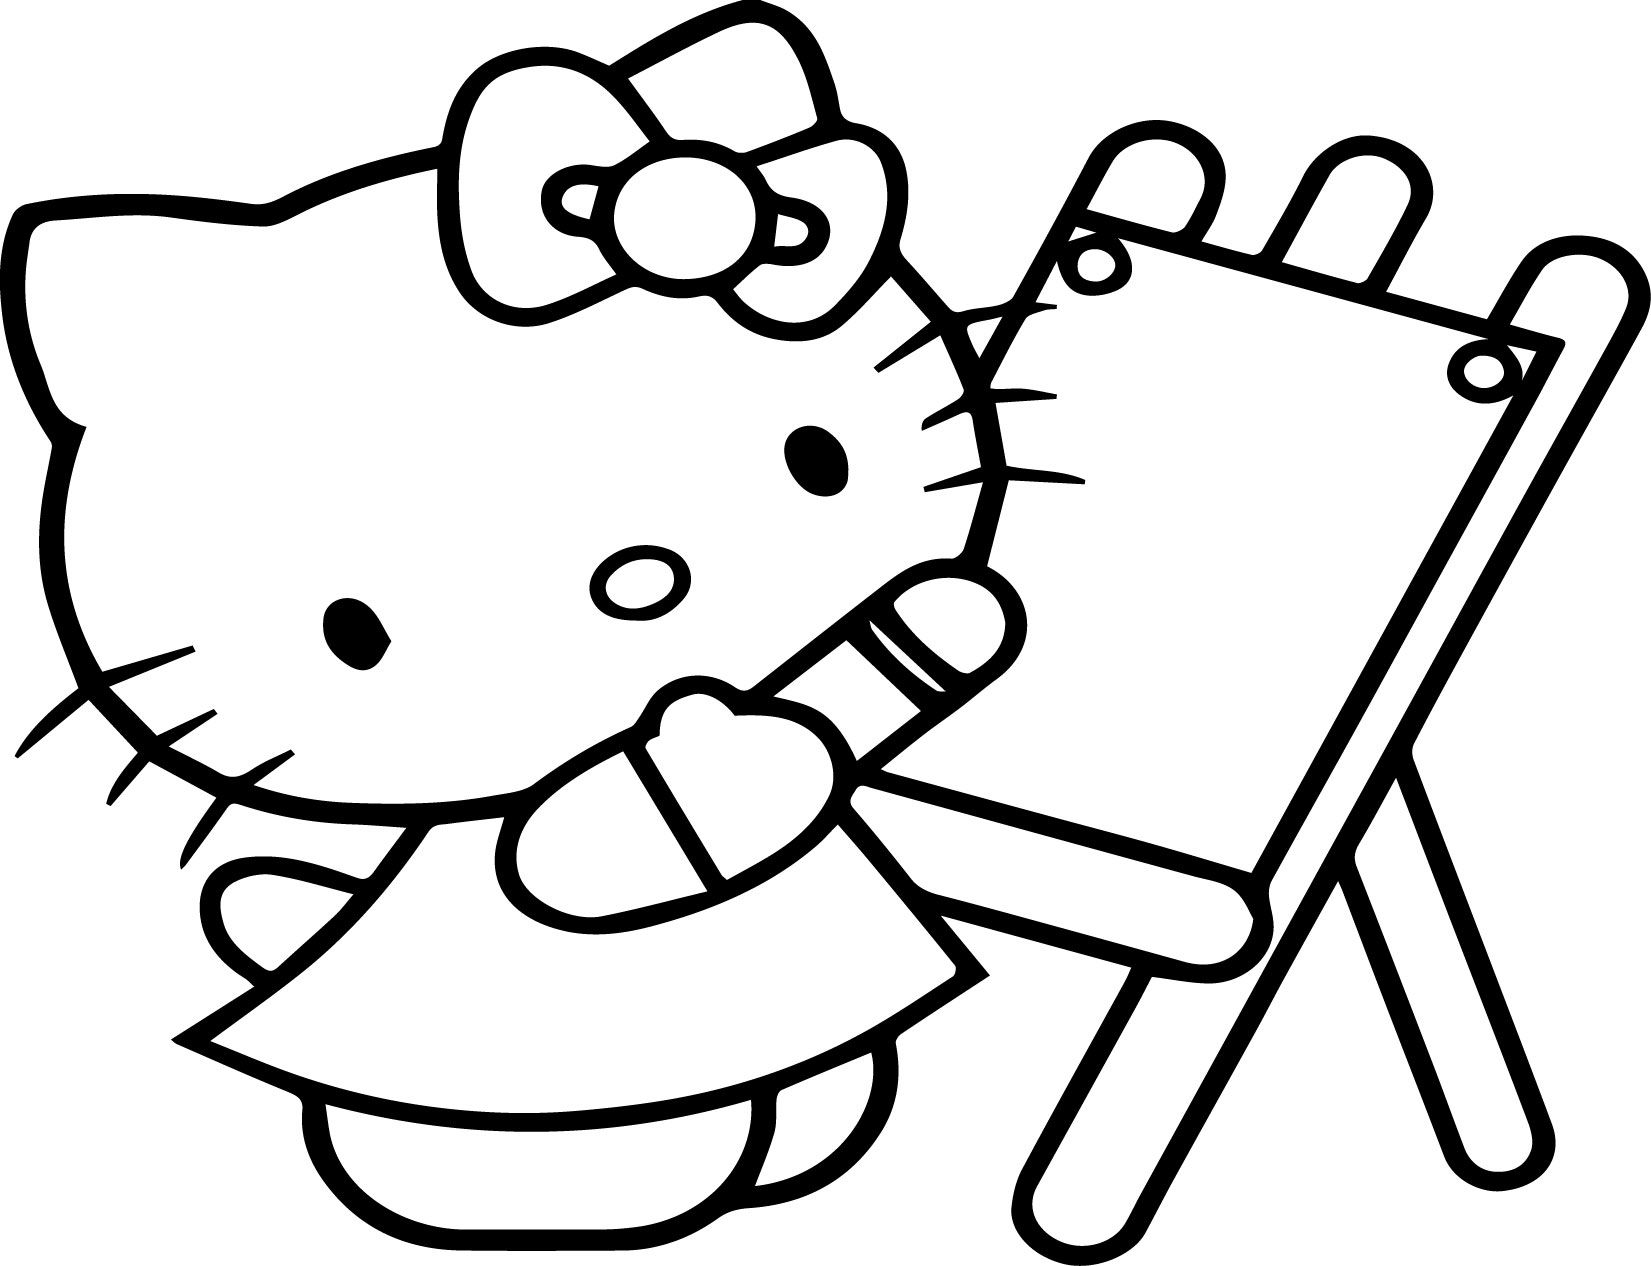 hello kitty coloring pages that you can print printable hello kitty mermaid coloring pages hello kitty print can that pages kitty coloring hello you